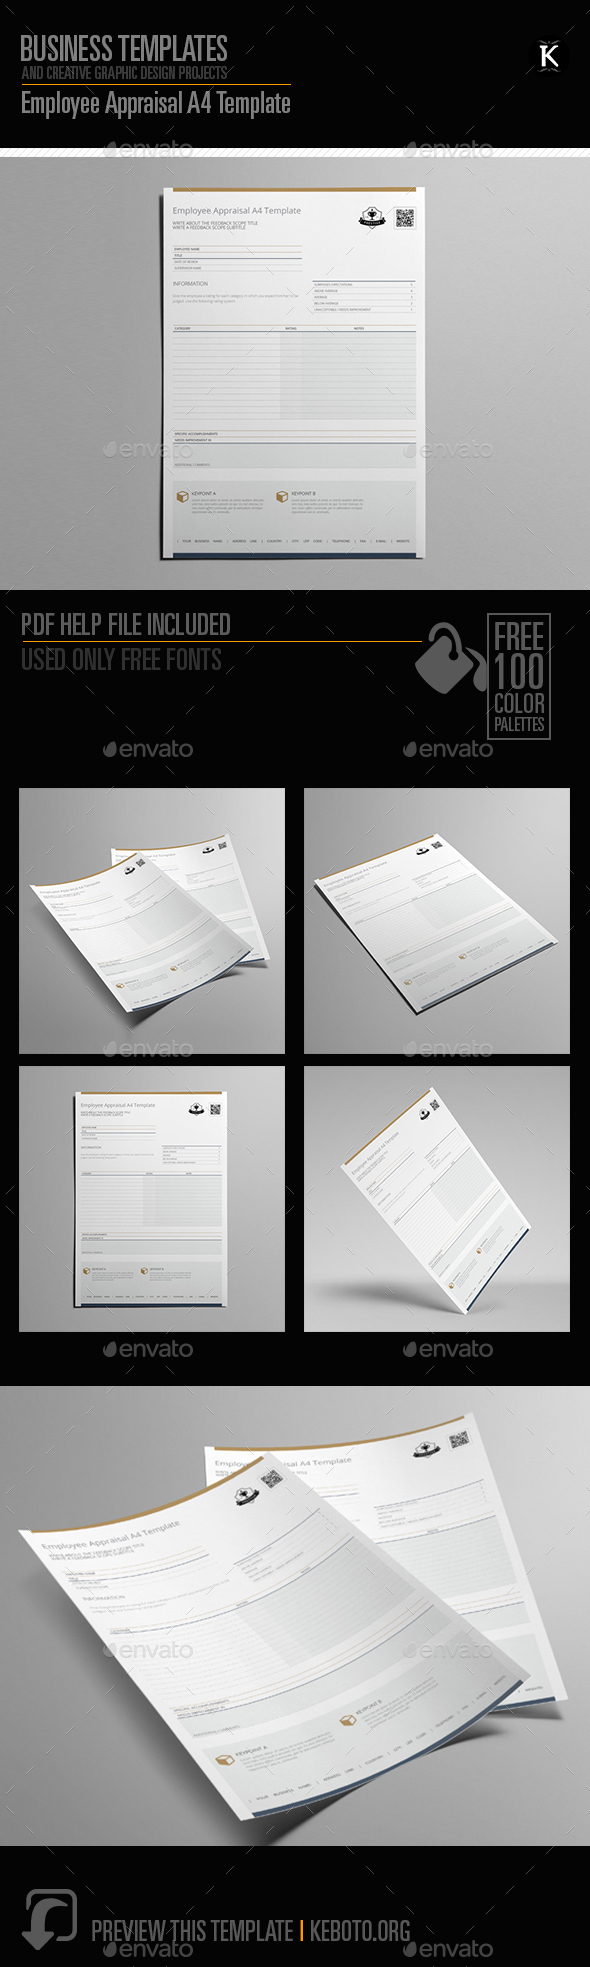 Employee Appraisal A4 Template - Miscellaneous Print Templates